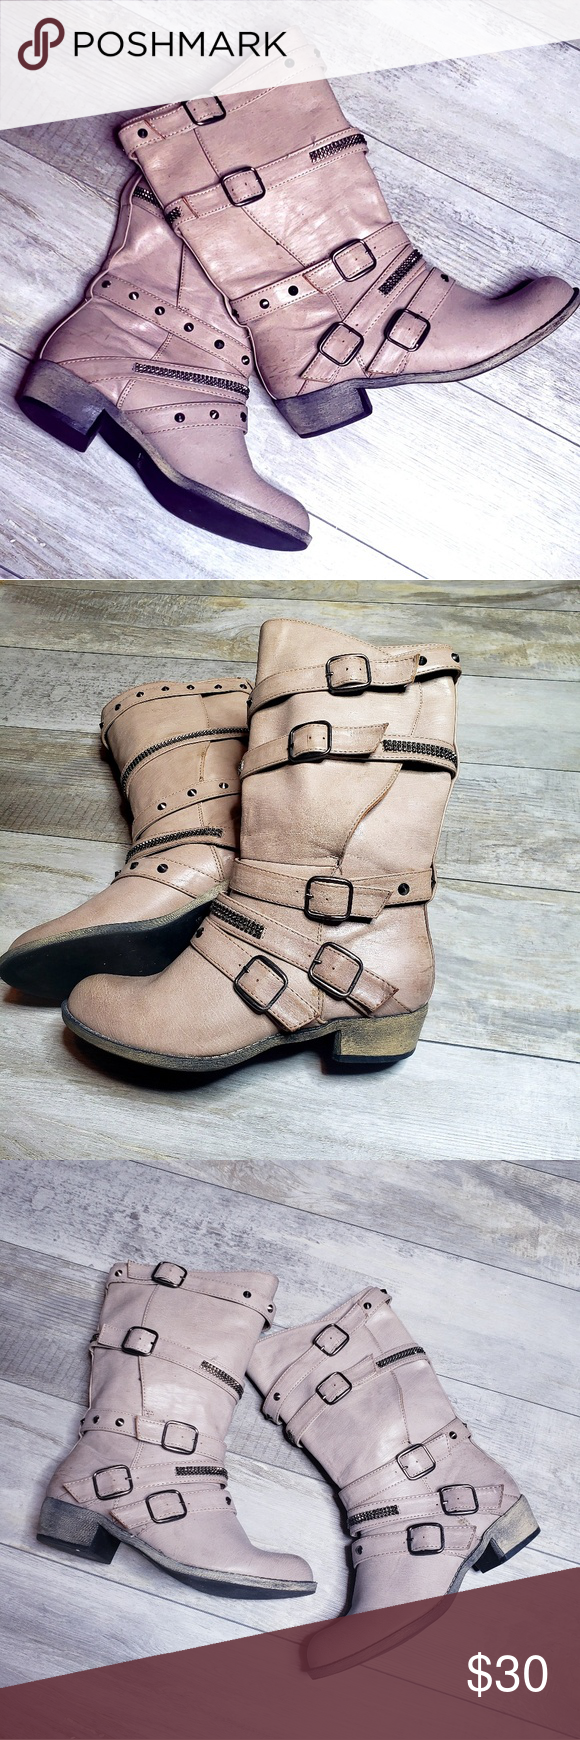 a30e02d8809b Call it Spring moto boots size 7 Awesome moto boots EUC Call it spring Size  7